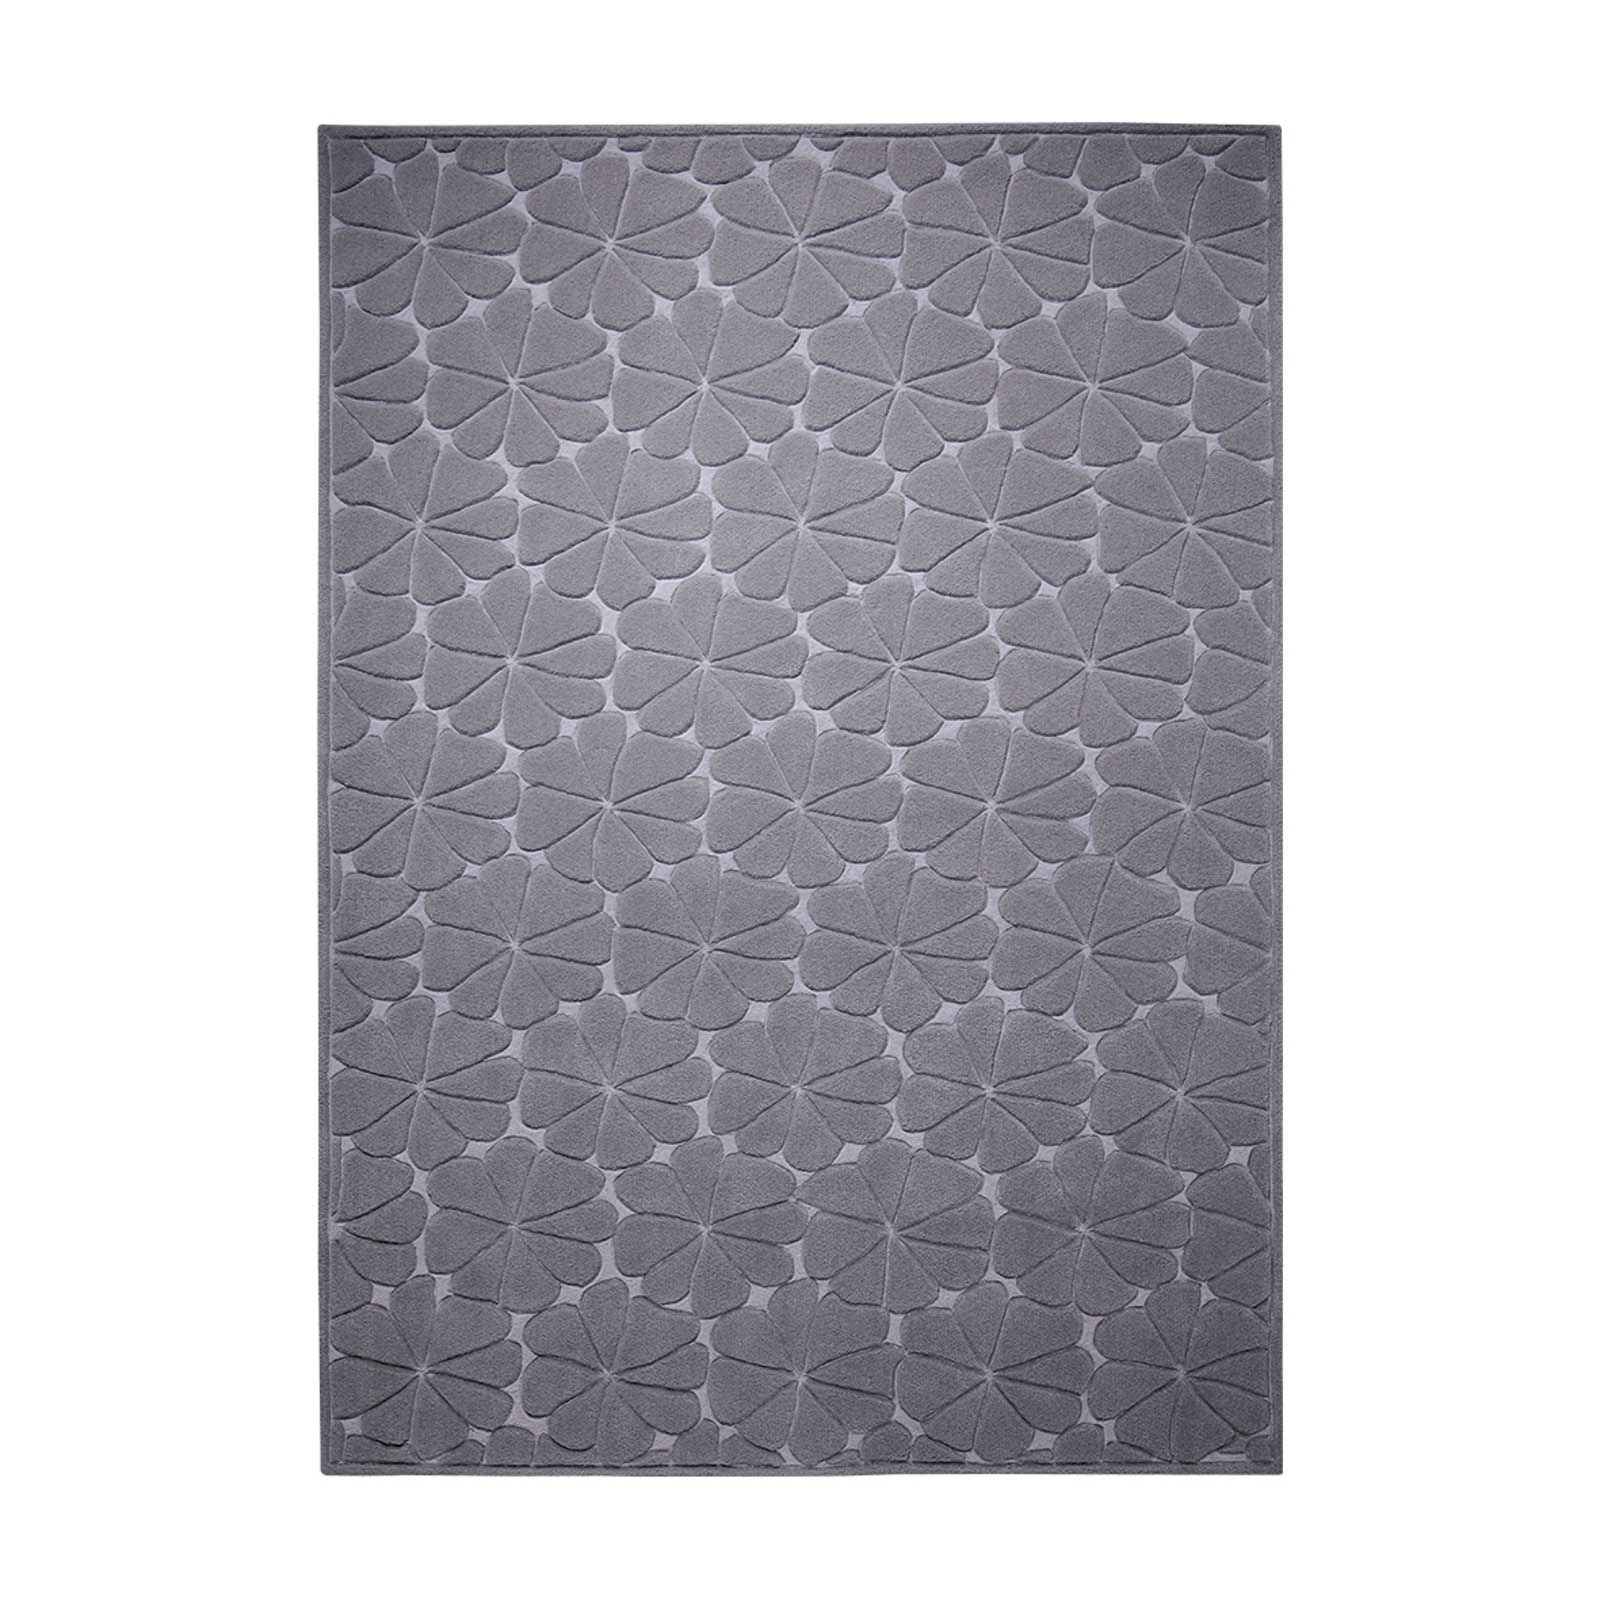 Ficus Rugs 4019 01 in Dark Grey by Esprit